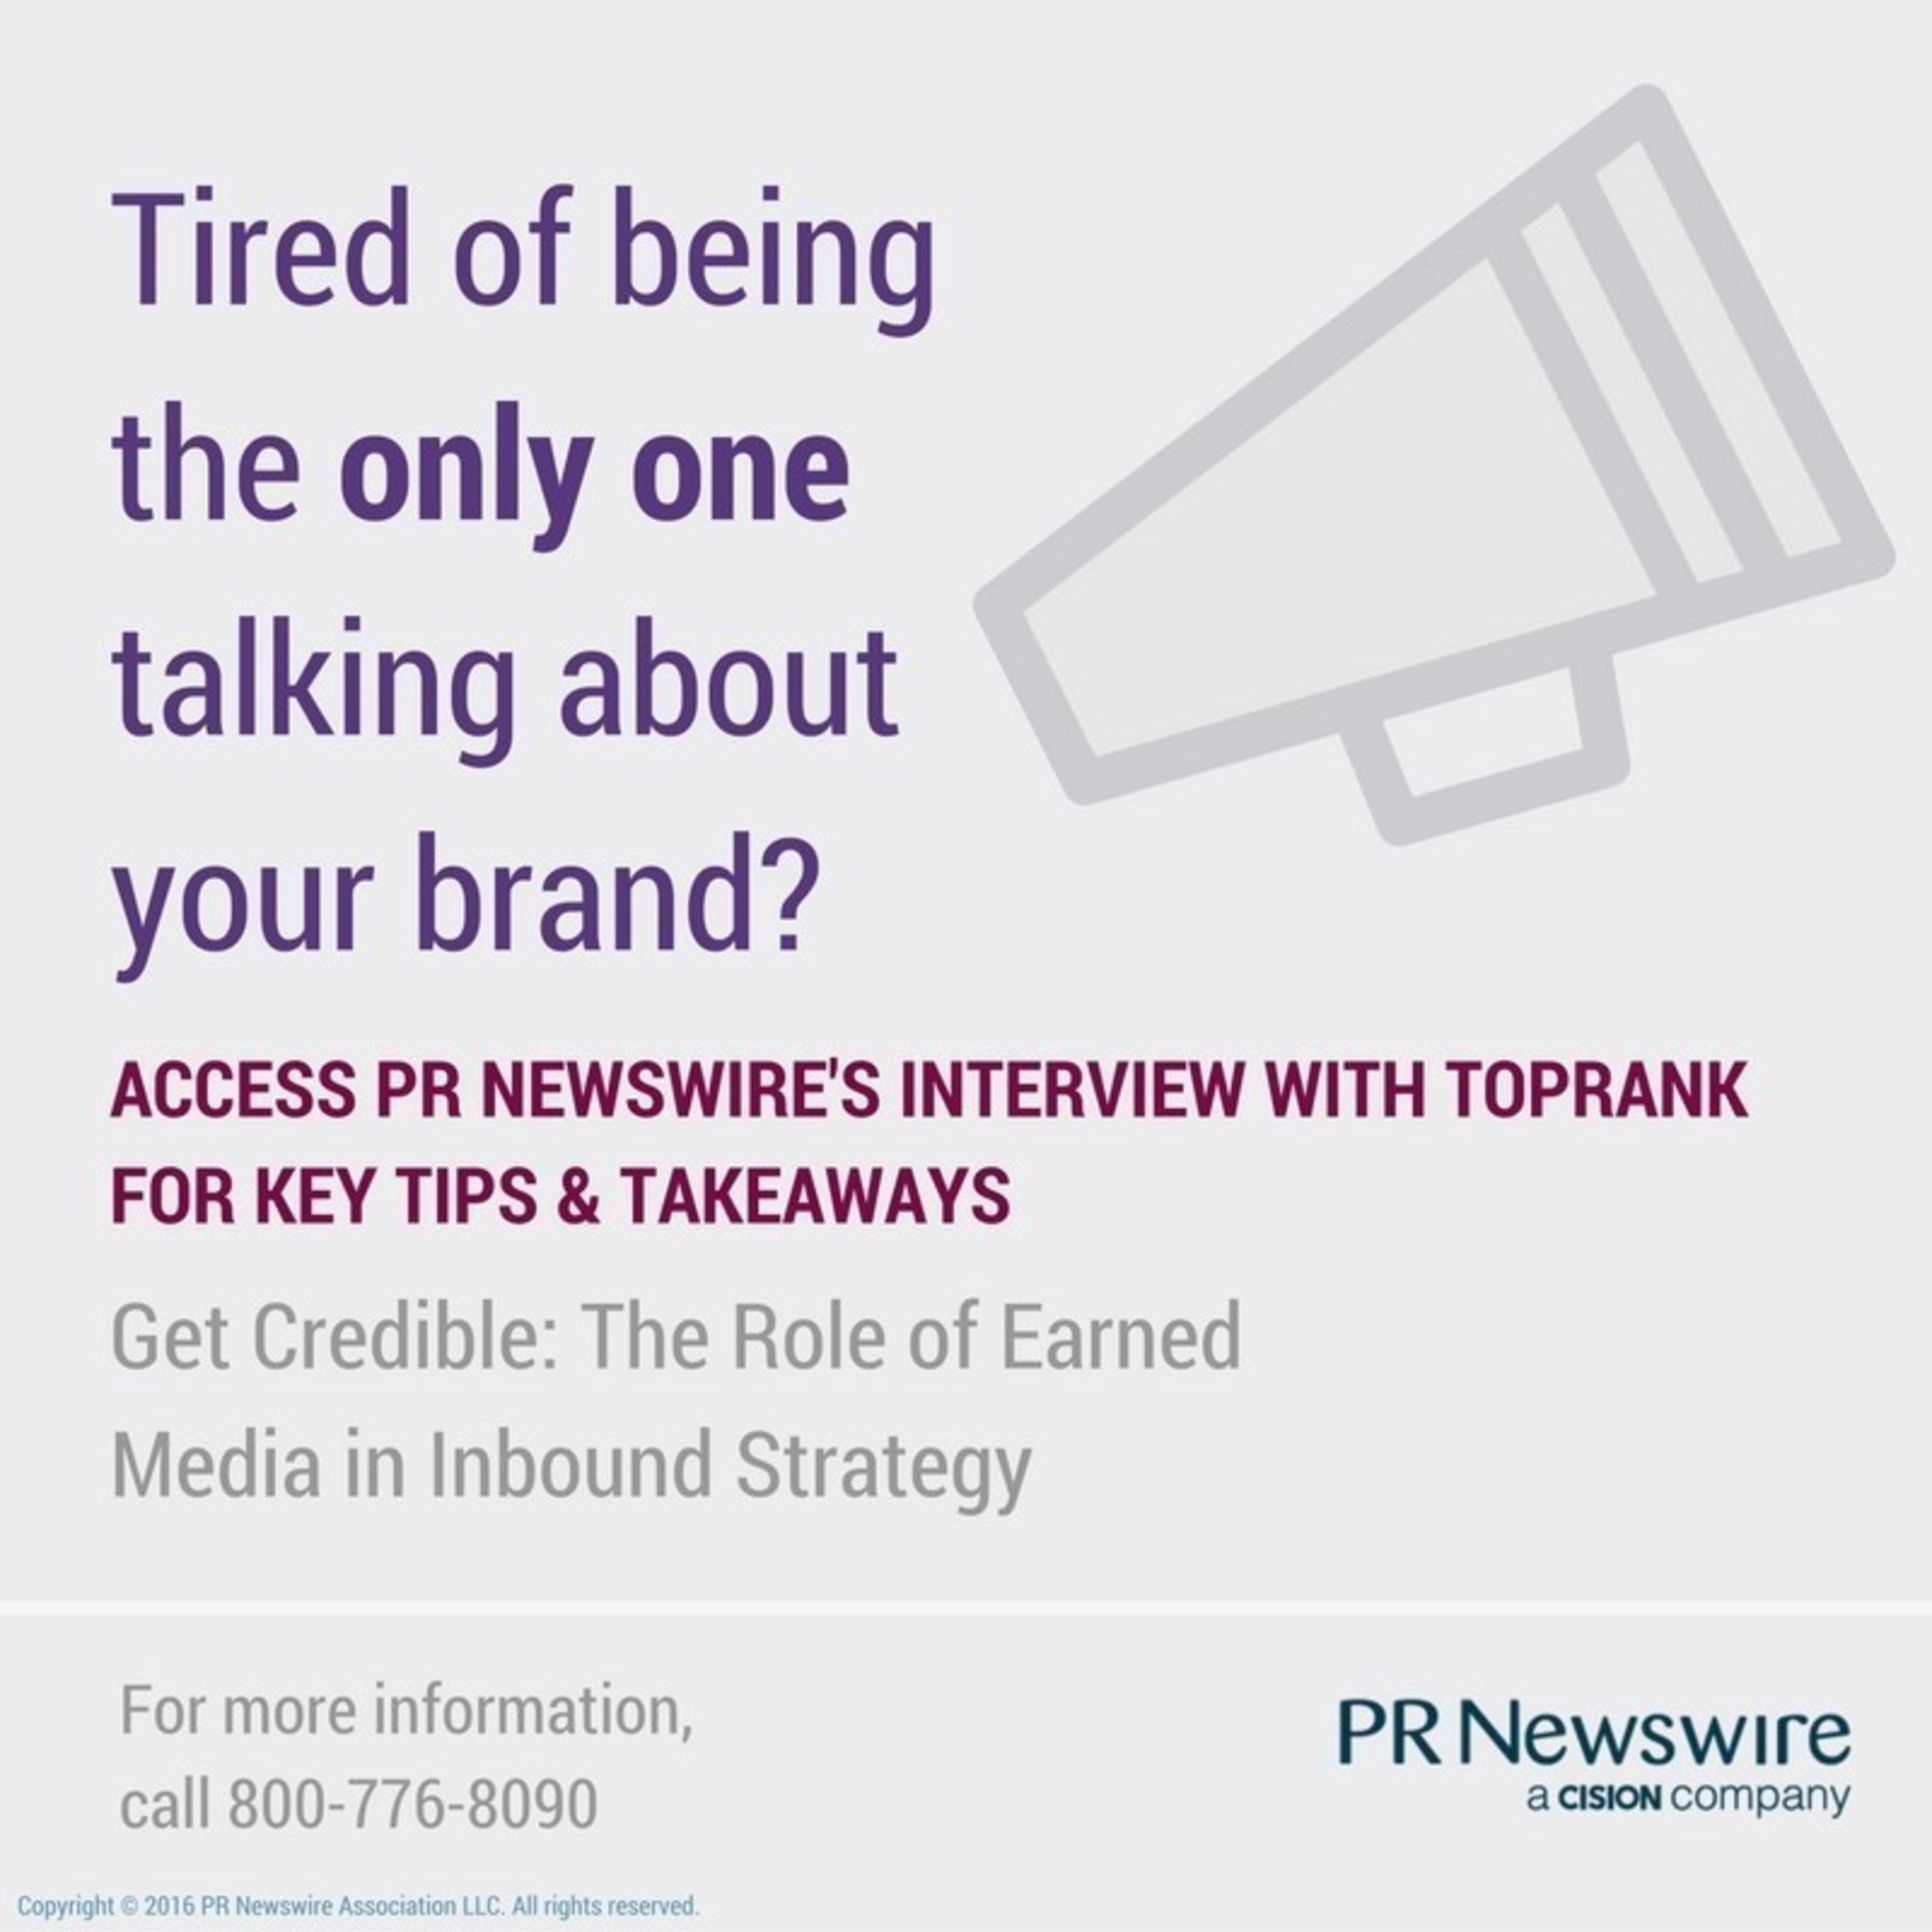 How to Increase Inbound Traffic Through Earned Media http://prn.to/2bRAfwN